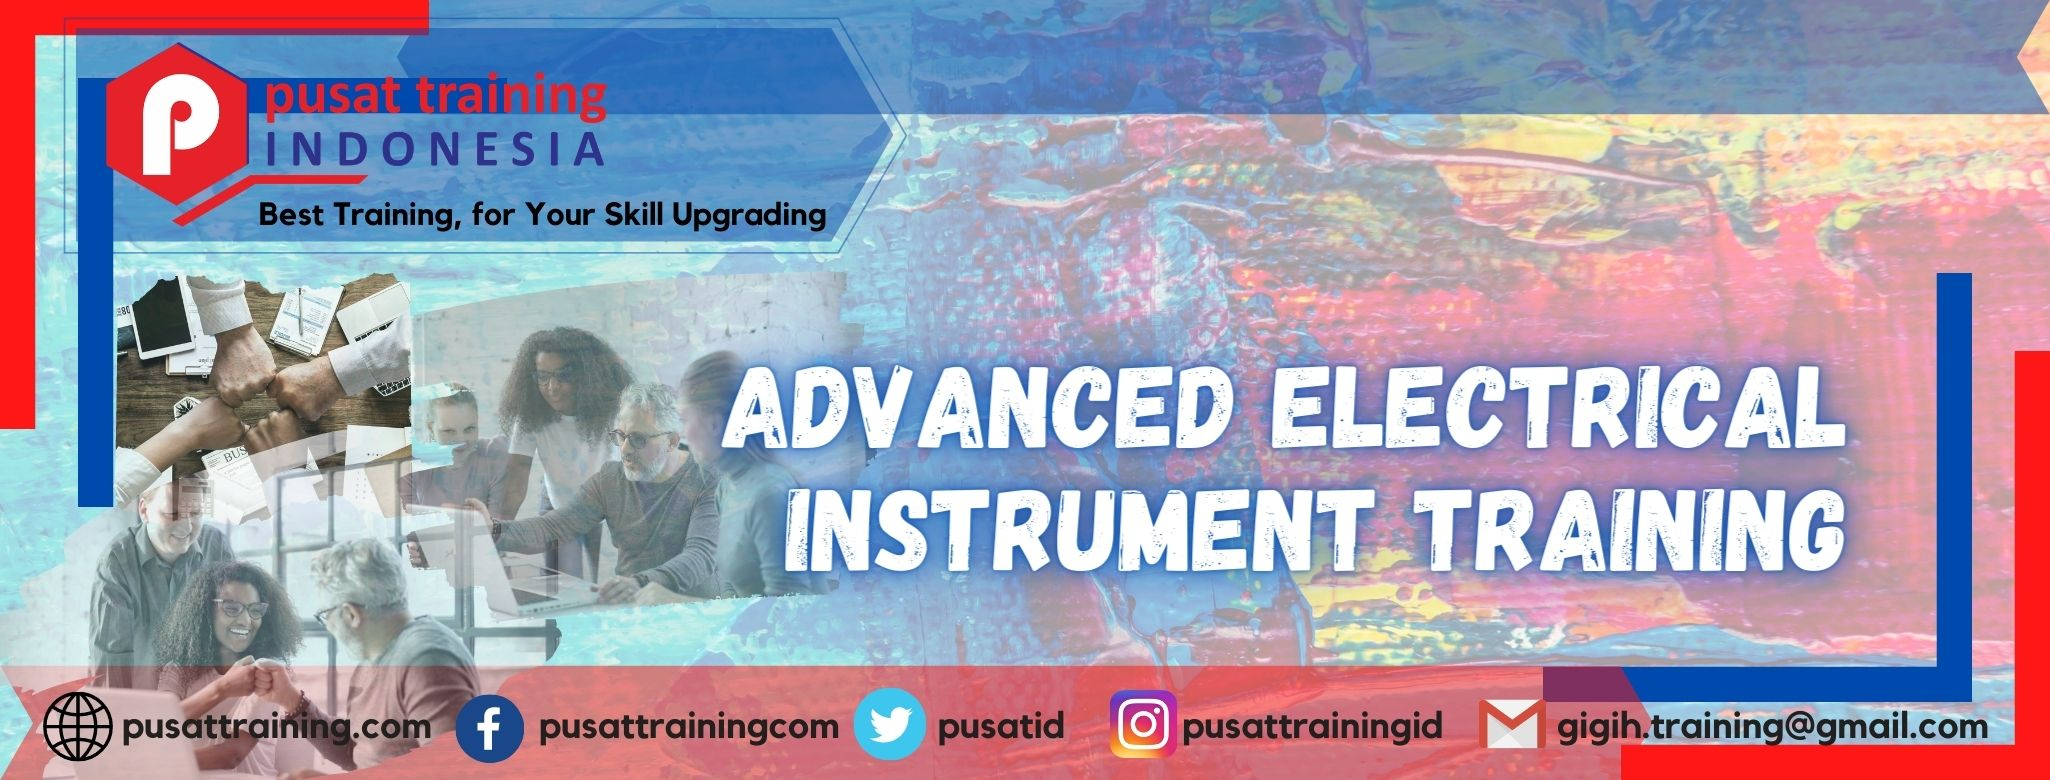 advance-electrical-instrument-training